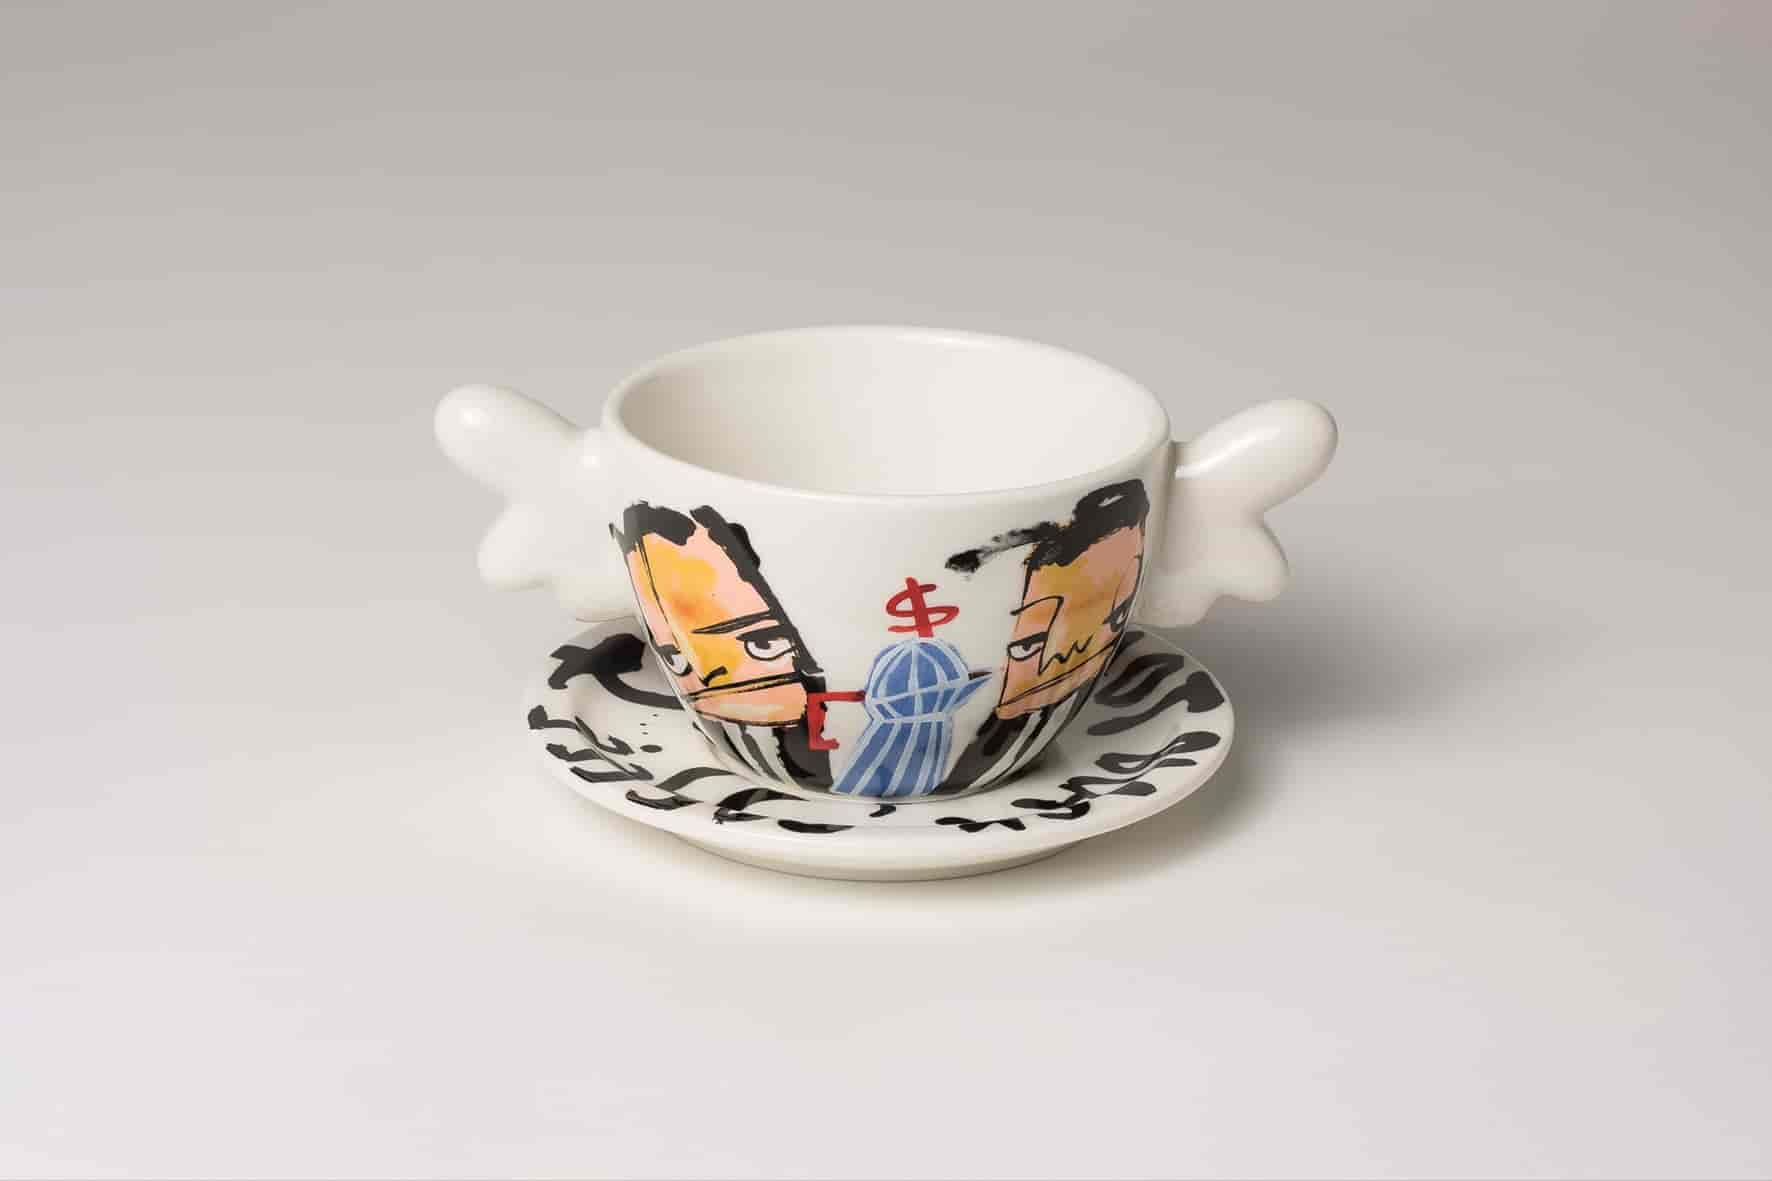 Selwyn senatori espresso boys heavenly coffee cup for Mail senatori